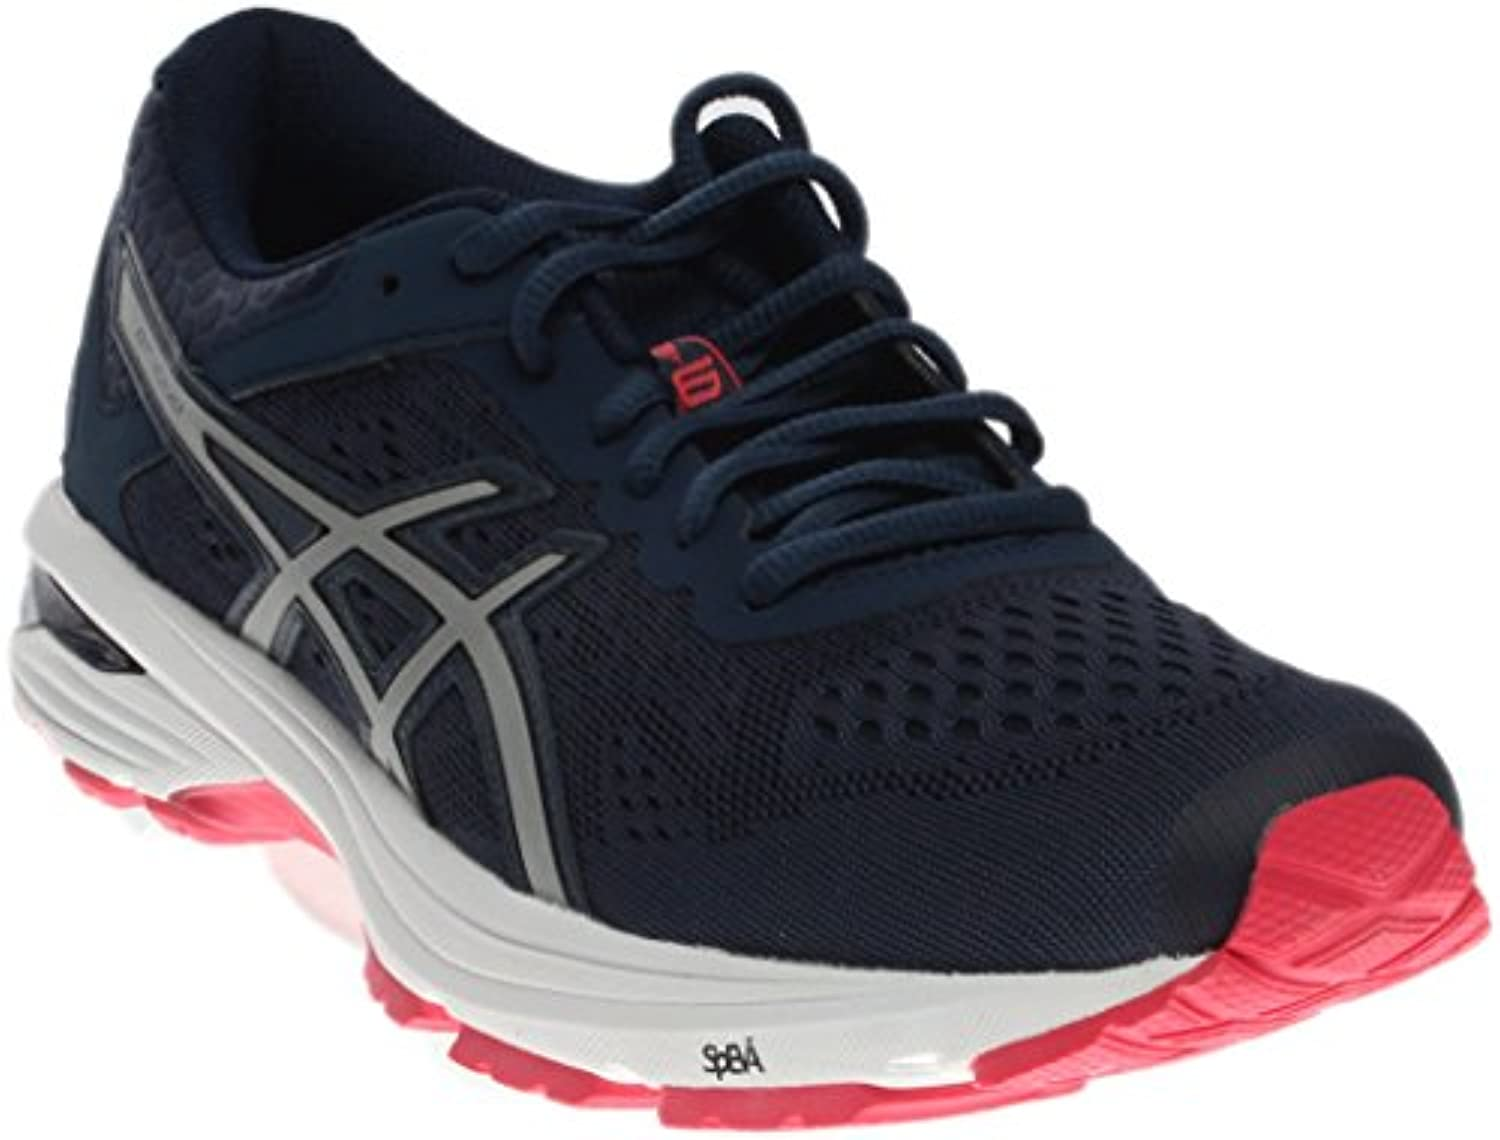 ASICS Women's GT-1000 6 Running-Shoes, Insignia Blue/Silver/Rouge Red, 6.5 Medium US